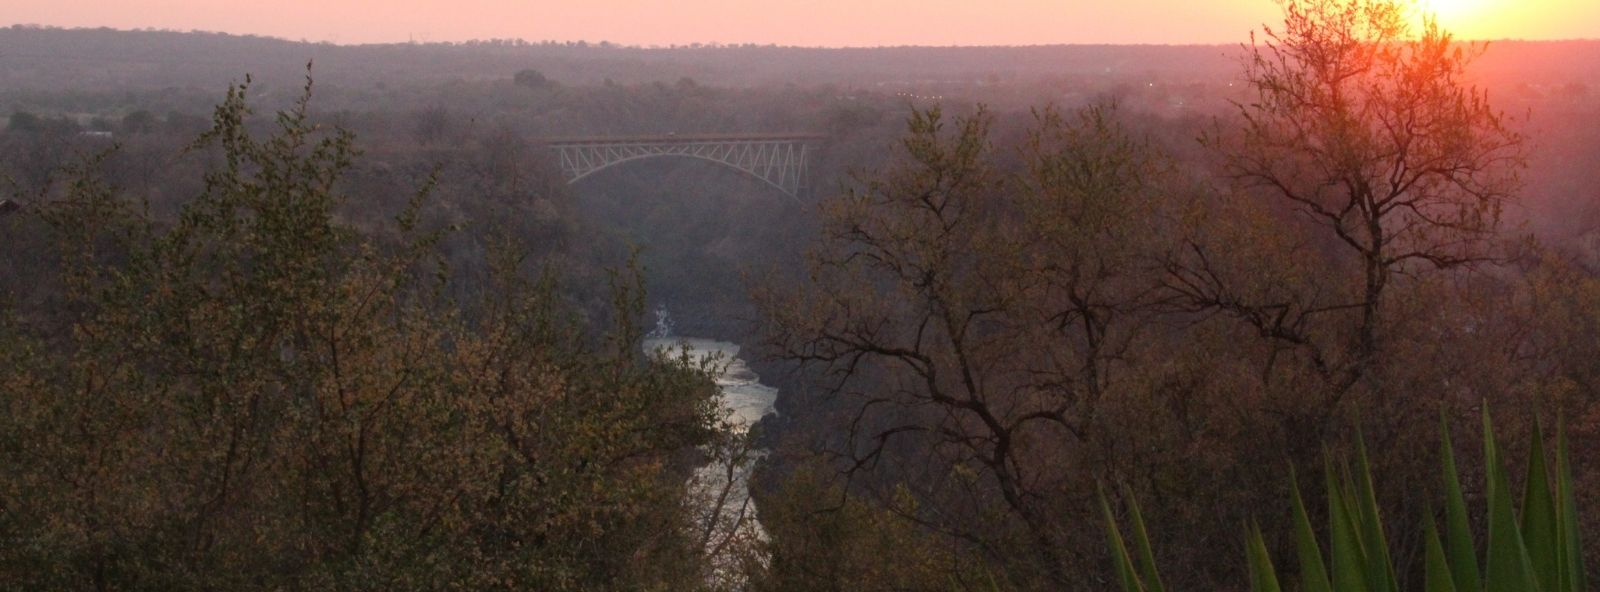 Photo at Sunset of the Victoria Falls Bridge from a distance with Zambezi river flowing below